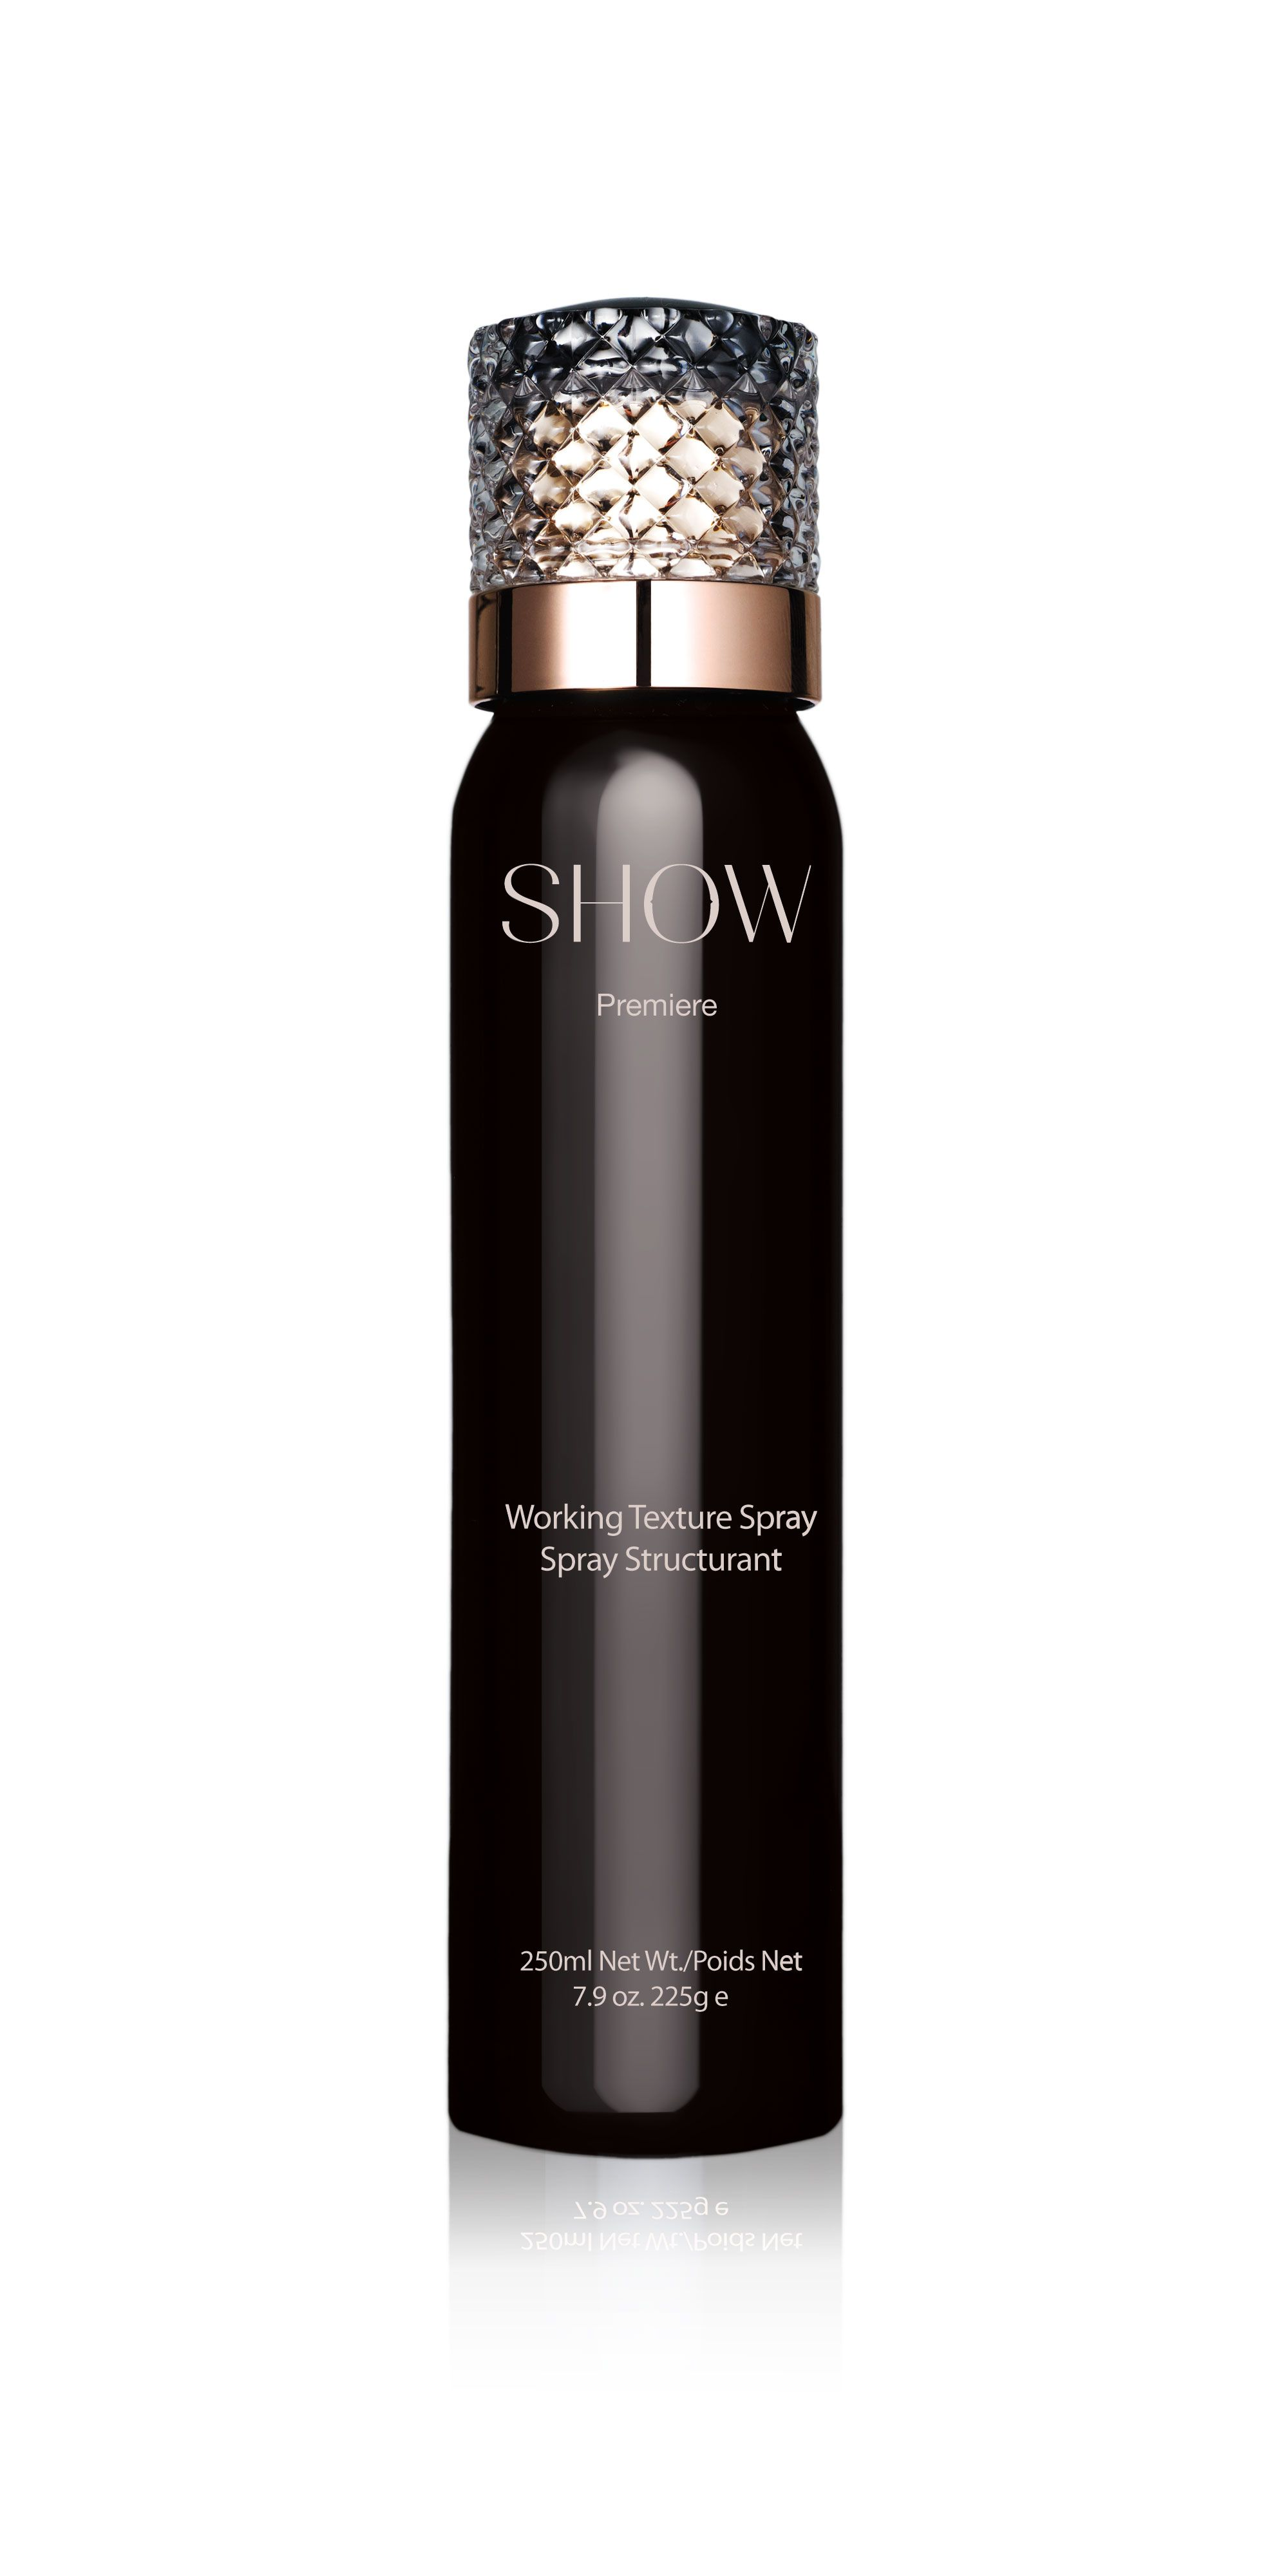 Show Show Premiere Working Texture Spray